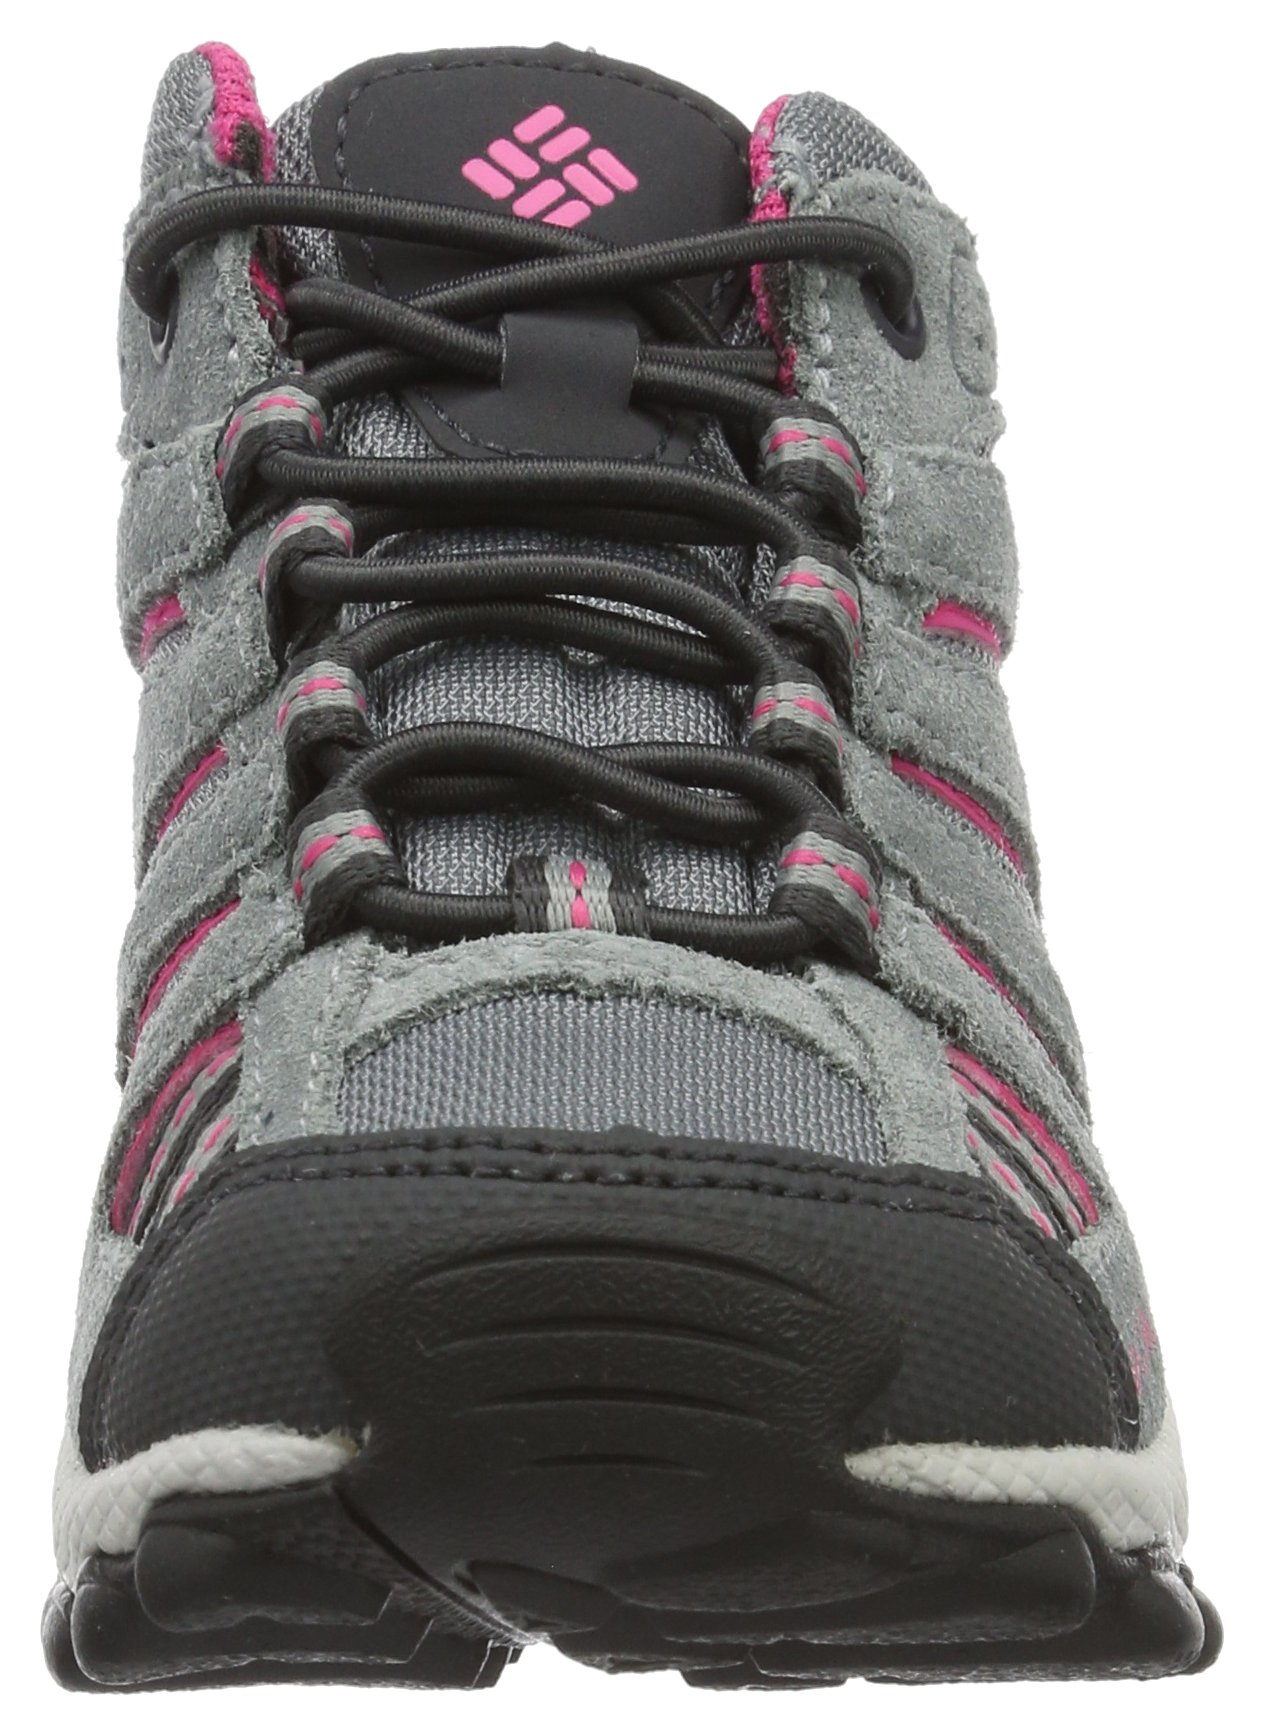 Columbia Childrens North Plains MID Waterproof Hiking Boot Grey Ash/Ultra Pink 11 M US Little Kid by Columbia (Image #4)